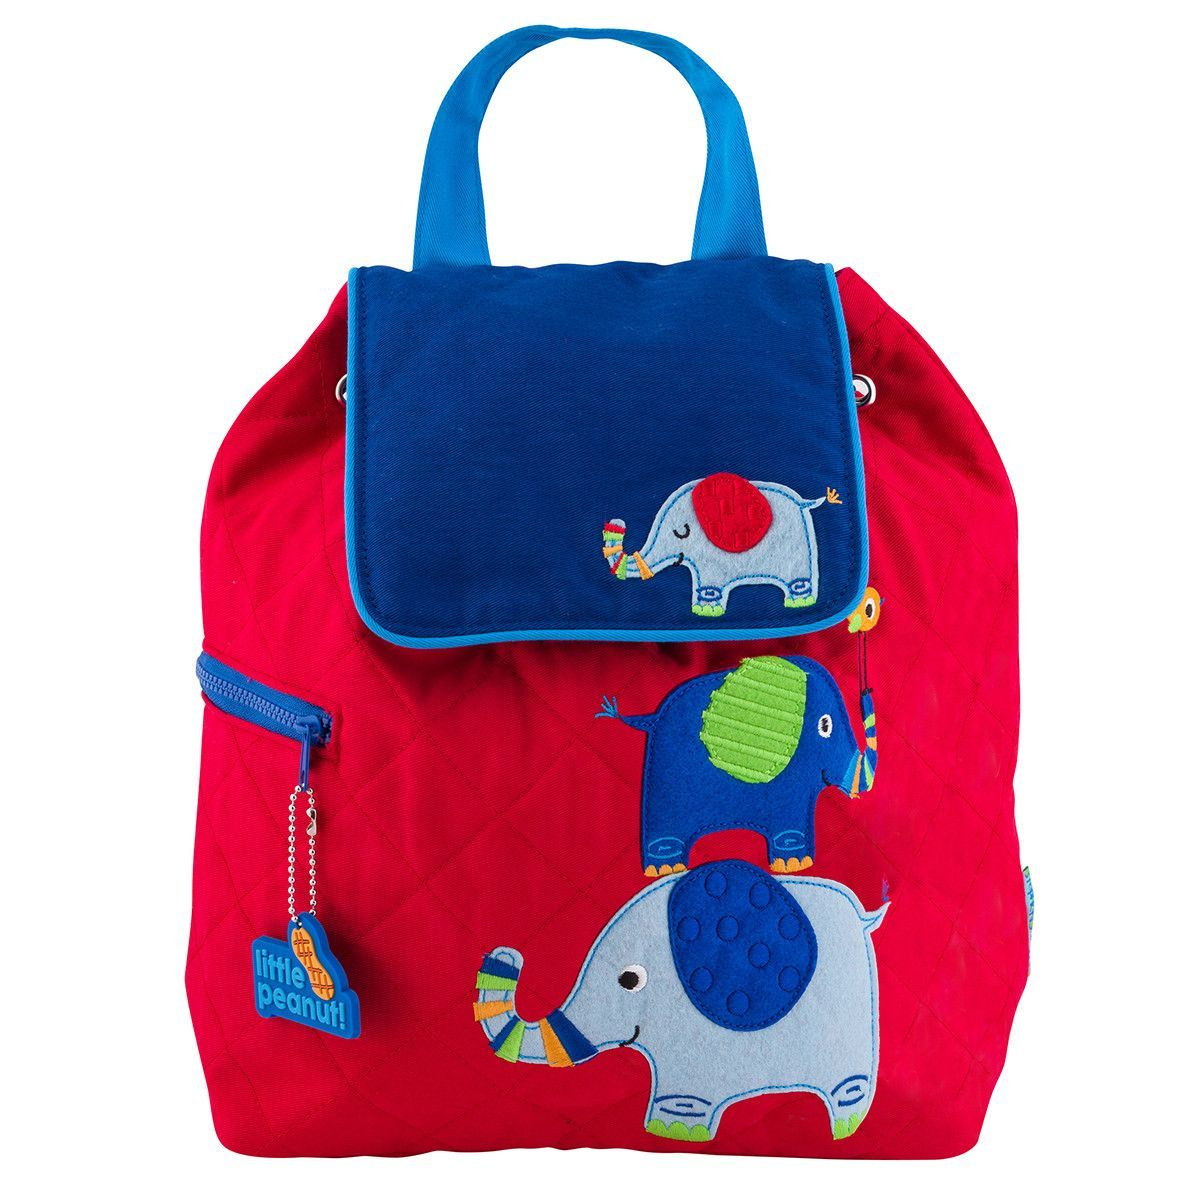 Stephen Joseph Quilted Backpack Elephant   Products   Pinterest ... 6533ca3685